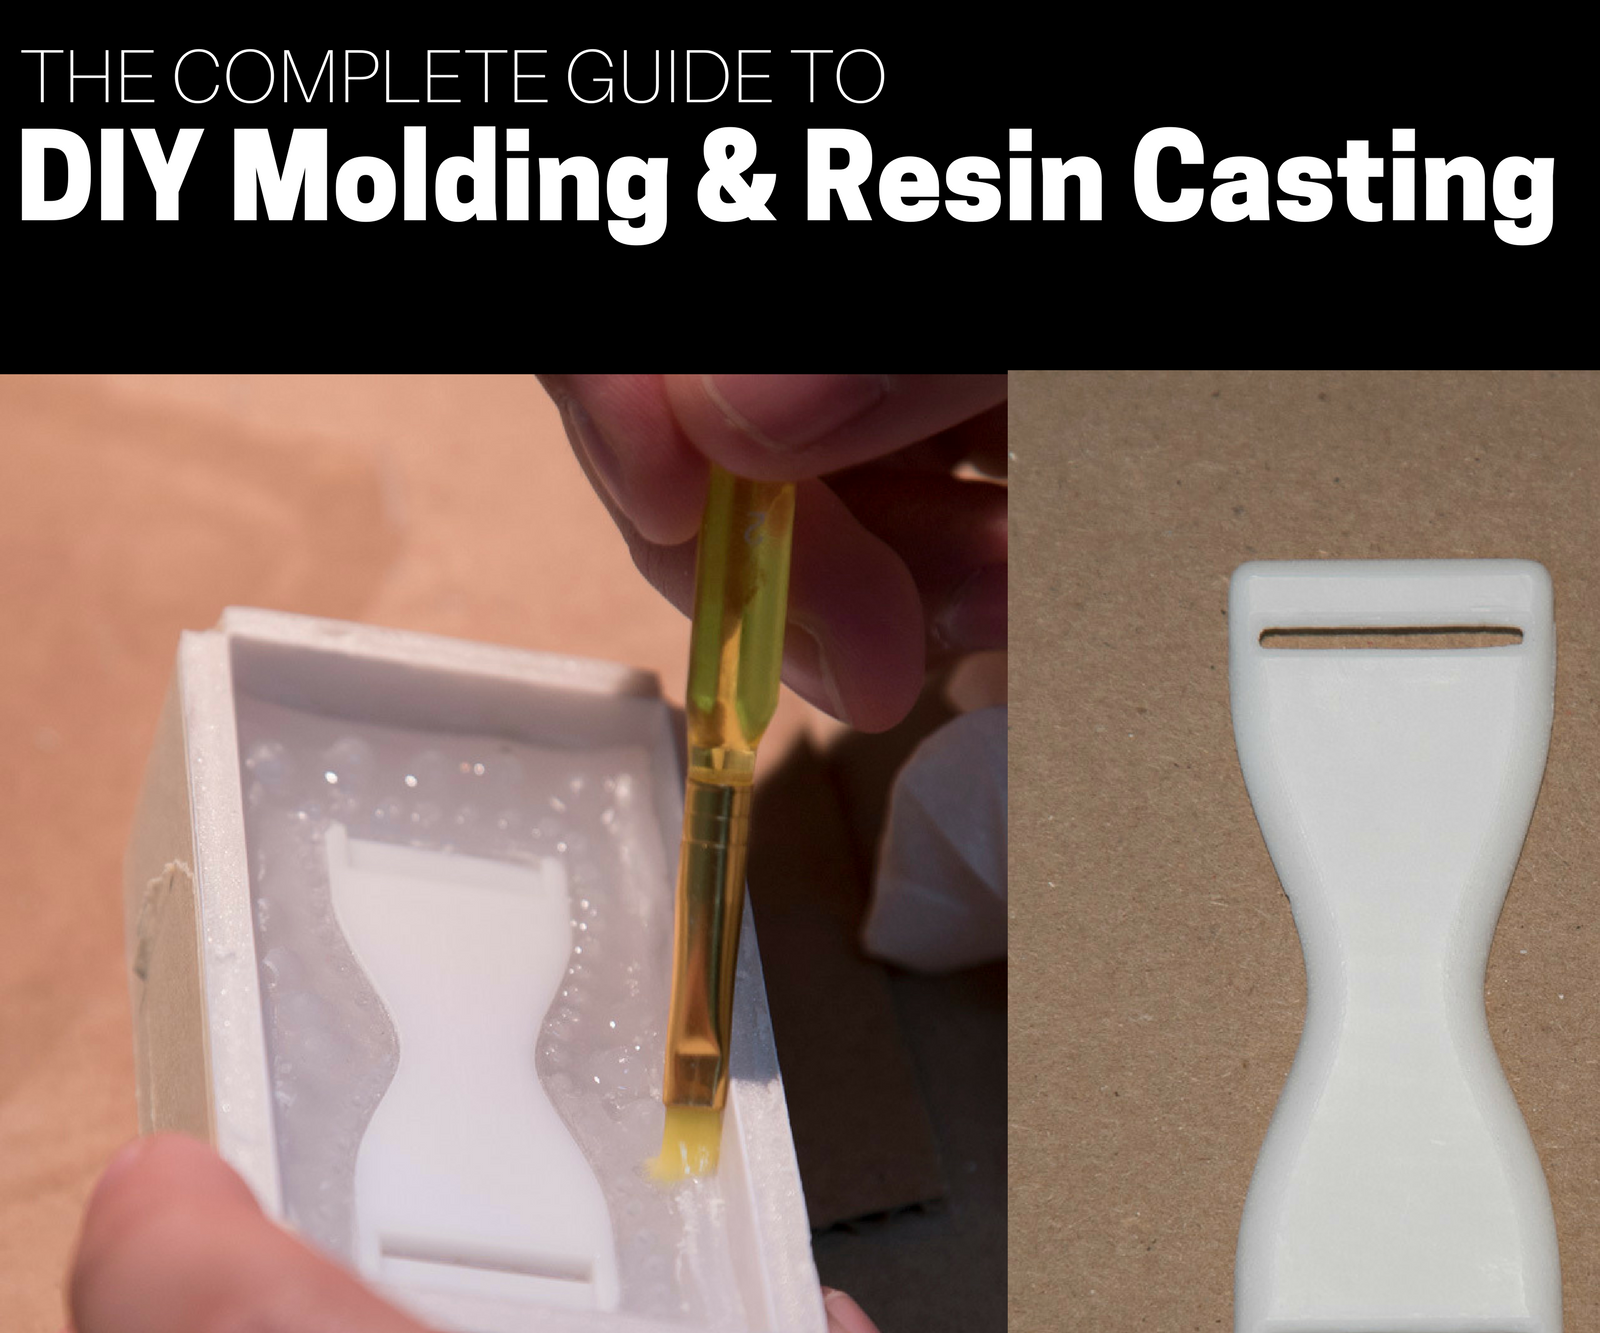 the complete guide to diy molding & resin casting : 12 steps (with